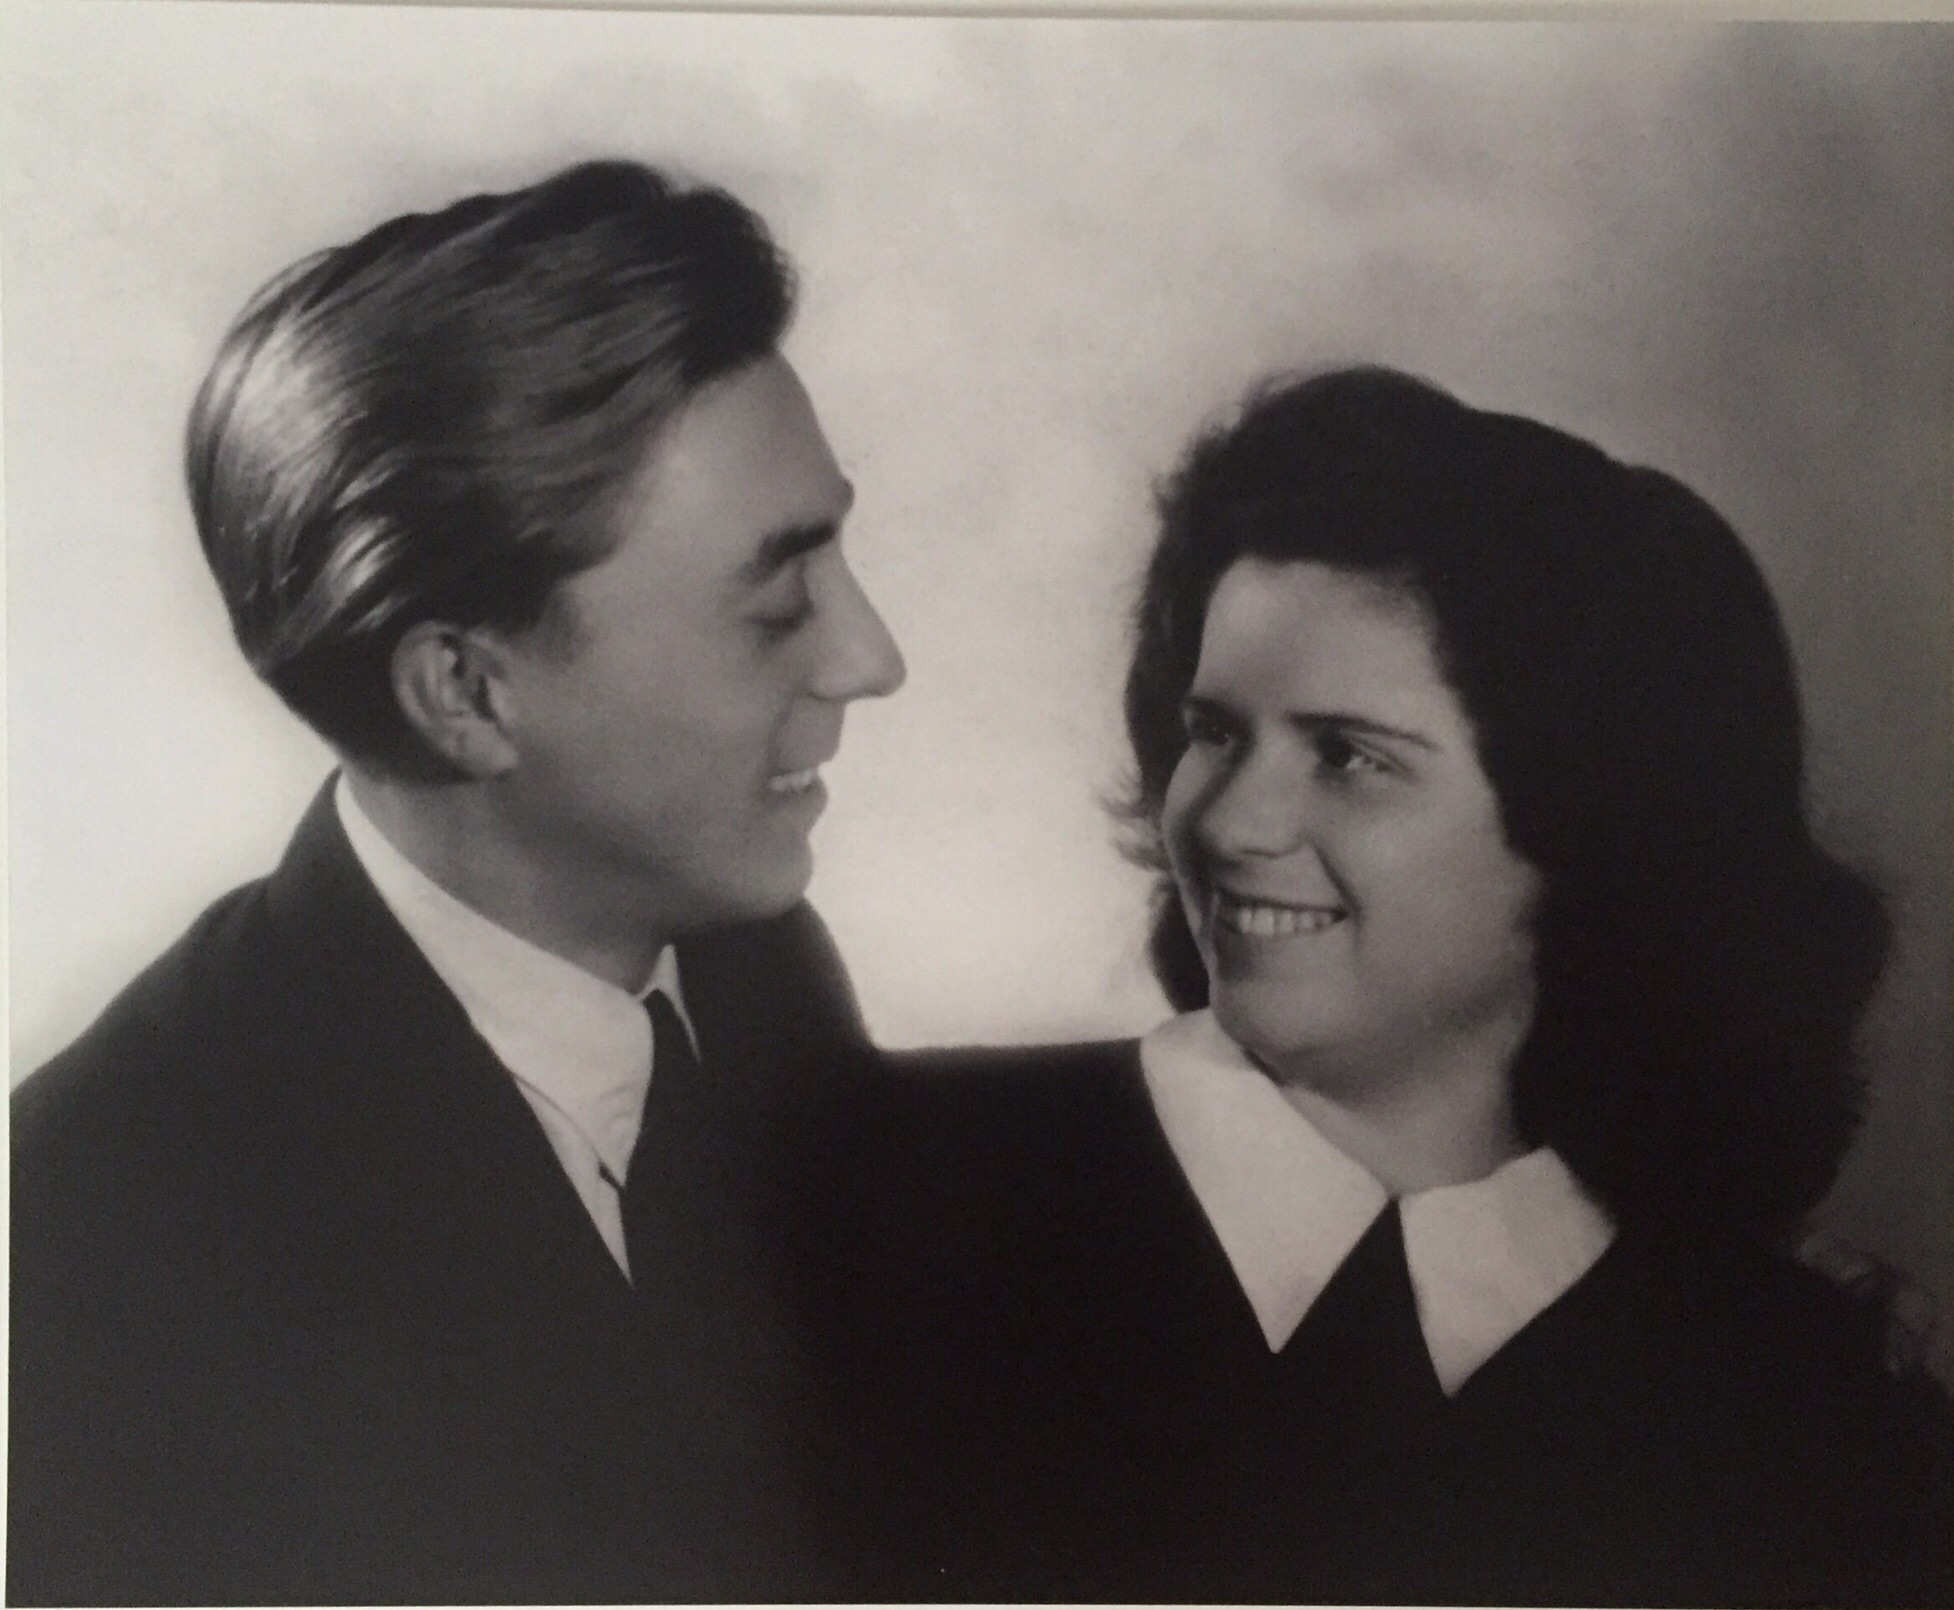 Nathan and Edith Roth. Engagement photo, just months after liberation, 1945.